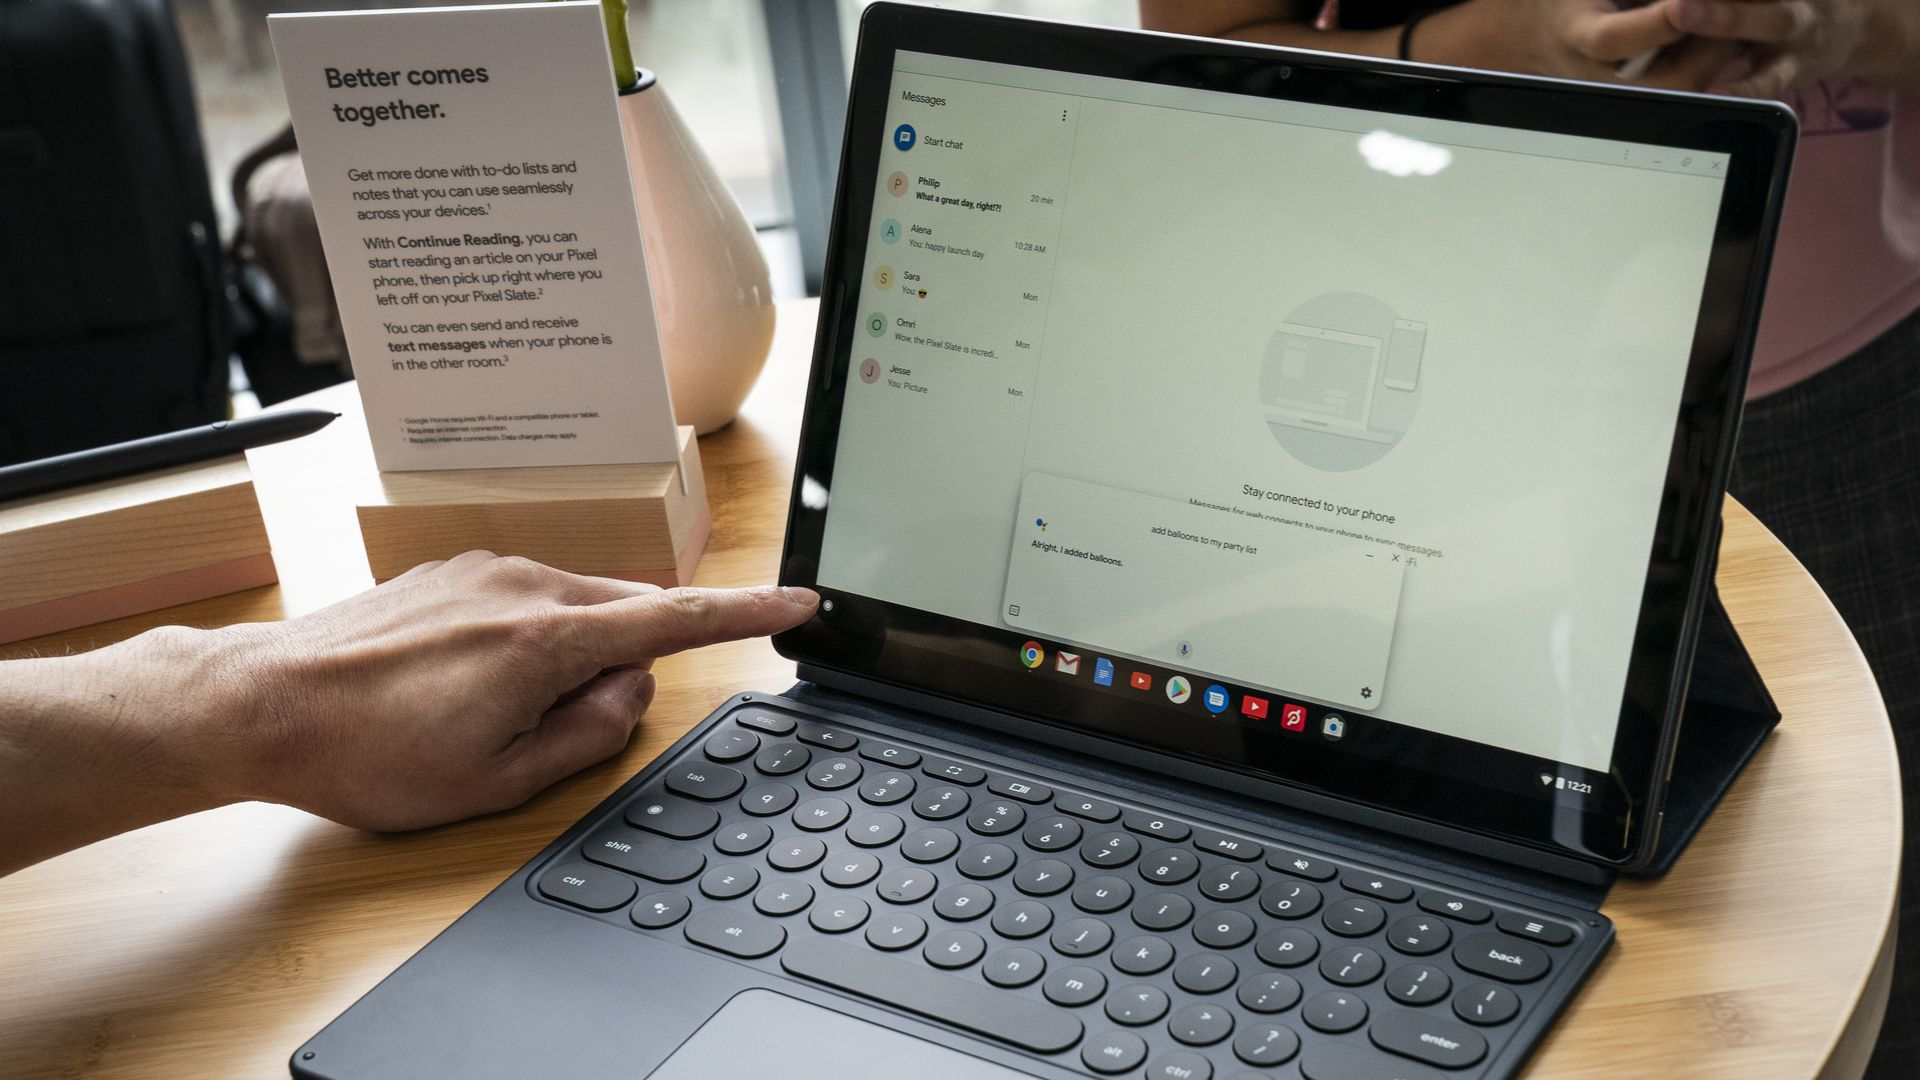 This image shows someone reaching for the keyboard of a Pixel Slate that's sitting on a table.